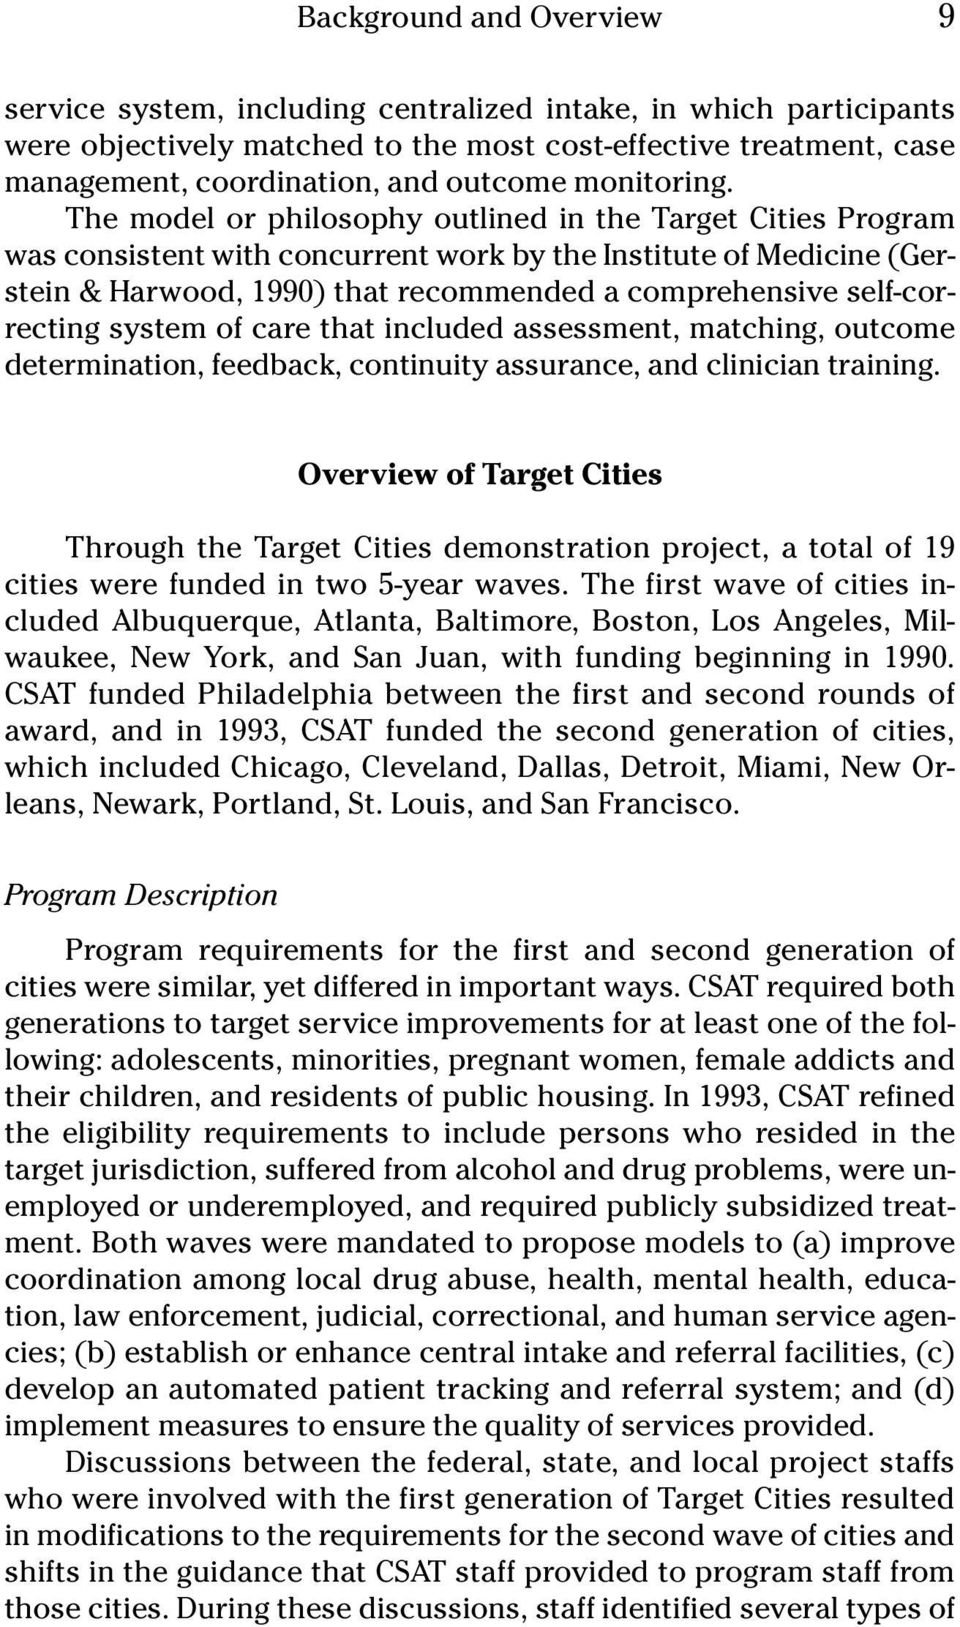 The model or philosophy outlined in the Target Cities Program was consistent with concurrent work by the Institute of Medicine (Gerstein & Harwood, 1990) that recommended a comprehensive